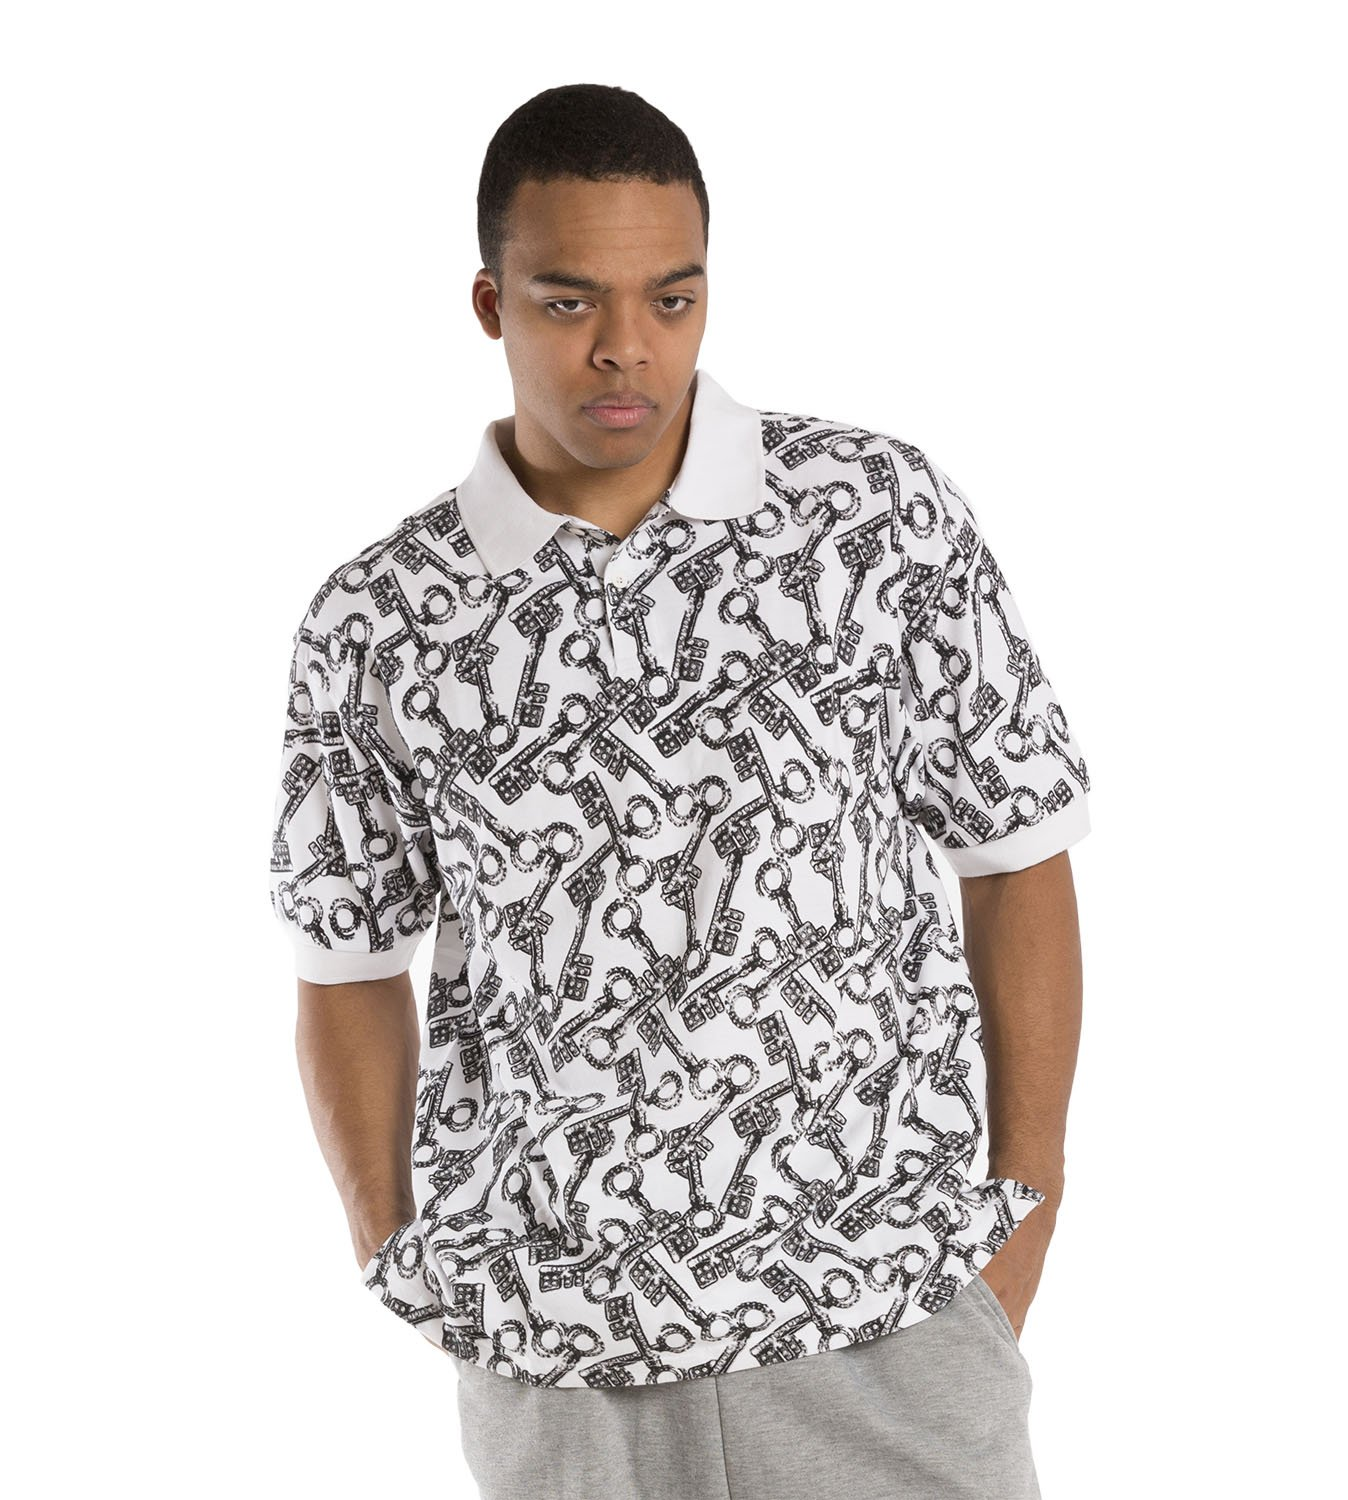 Vibes Men's Polo Pique Shirts Relax fit Variety of Fashion Print Short Sleeve